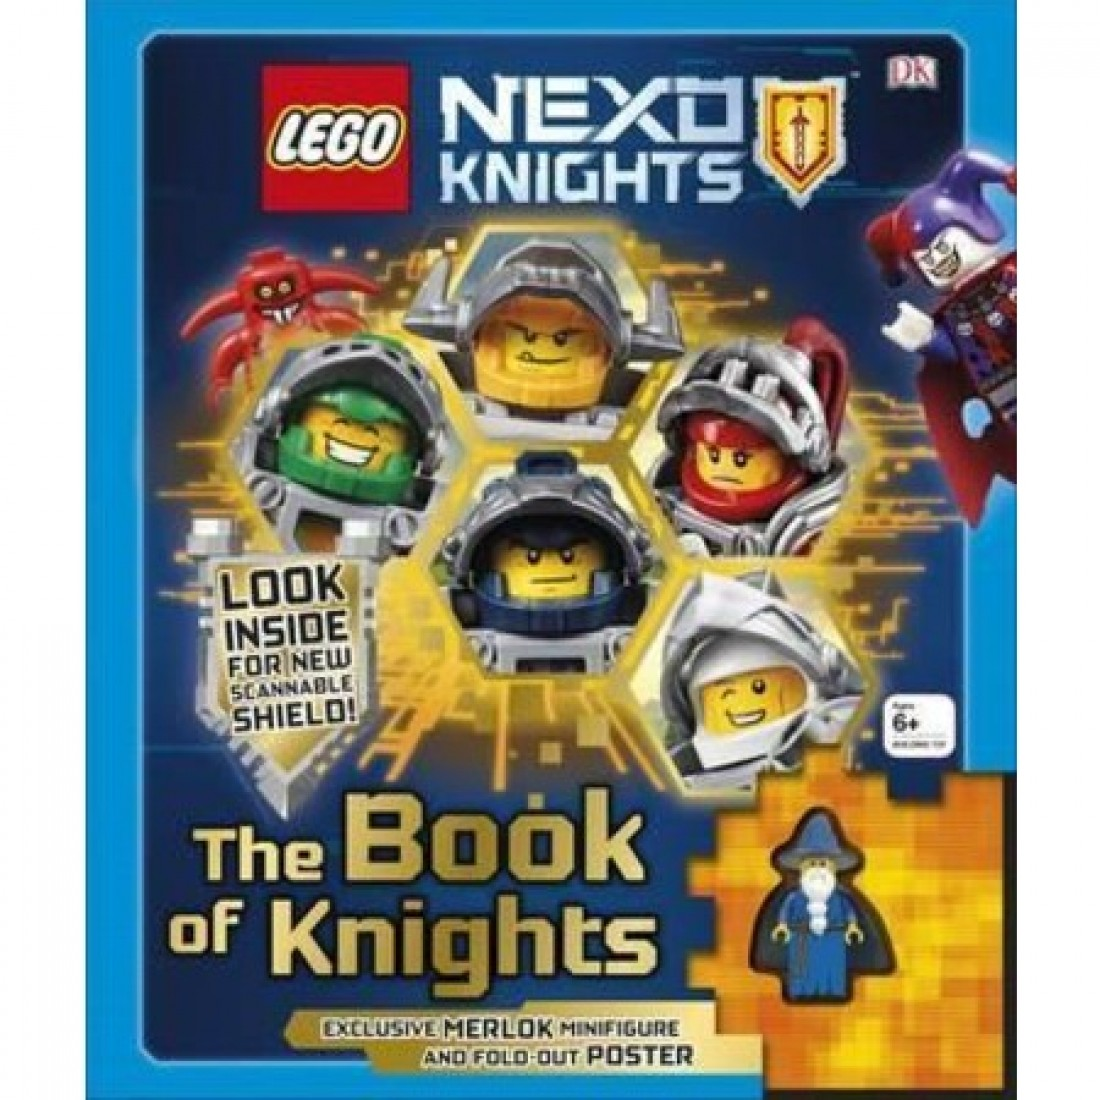 lego nexo knights the book of knights includes exclusive